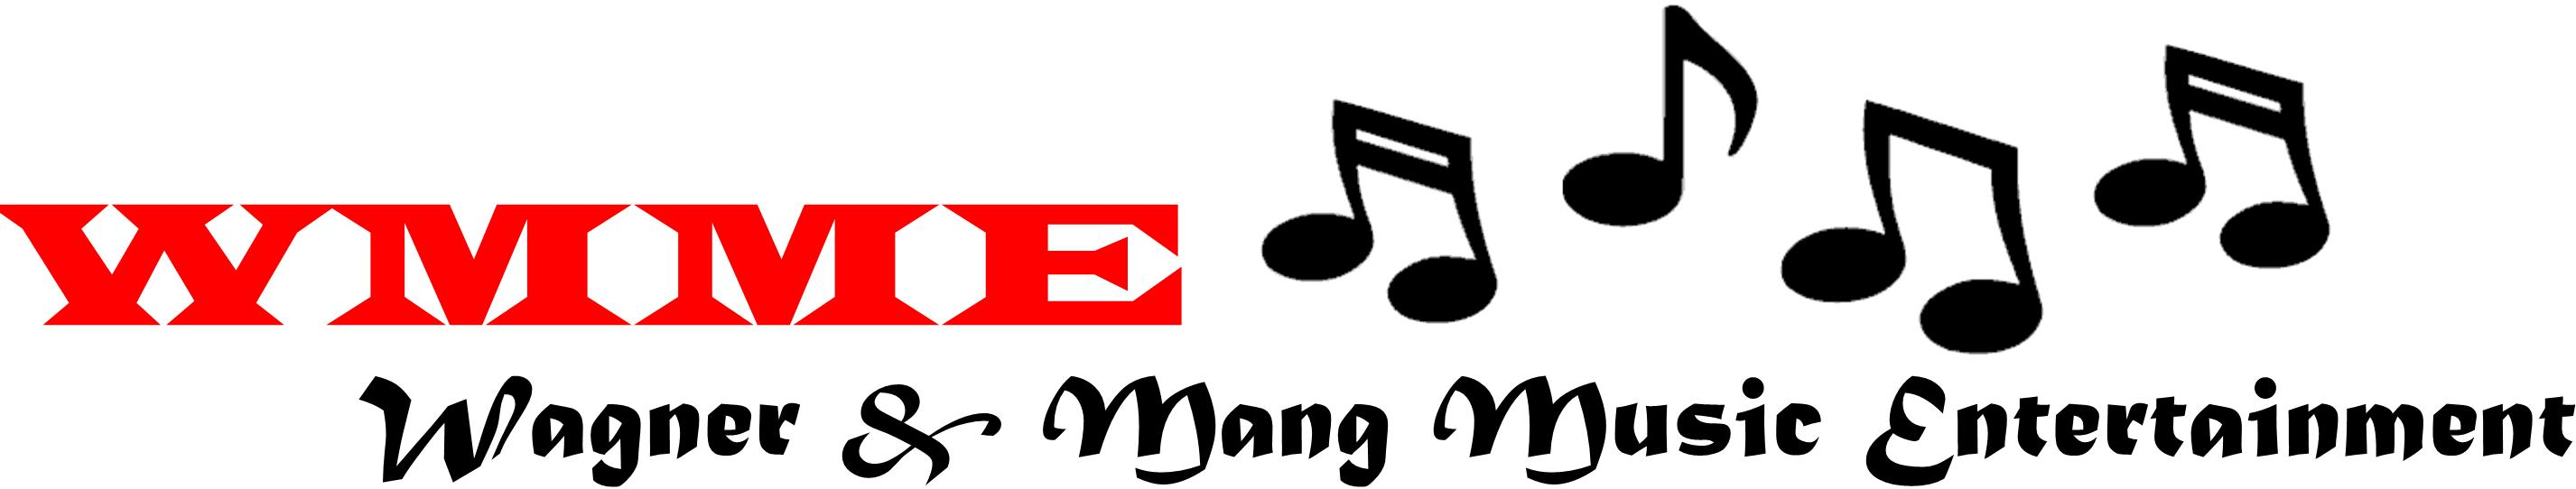 WMME - Wagner & Mang Music Entertainment